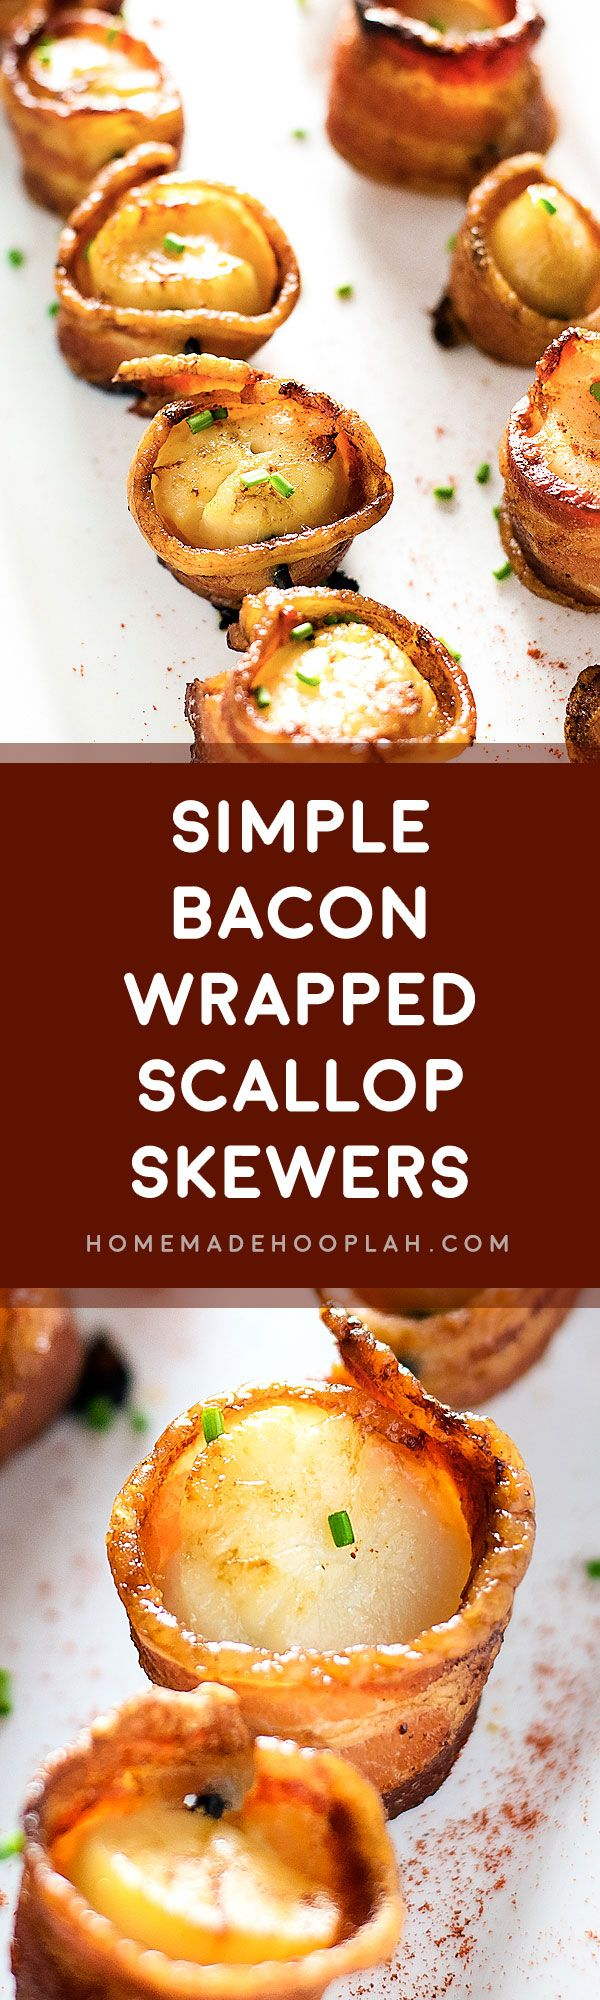 Simple Bacon Wrapped Scallop Skewers! The best combination of the land and the sea! Crispy bacon cooked around tender, juicy scallops. | HomemadeHooplah.com